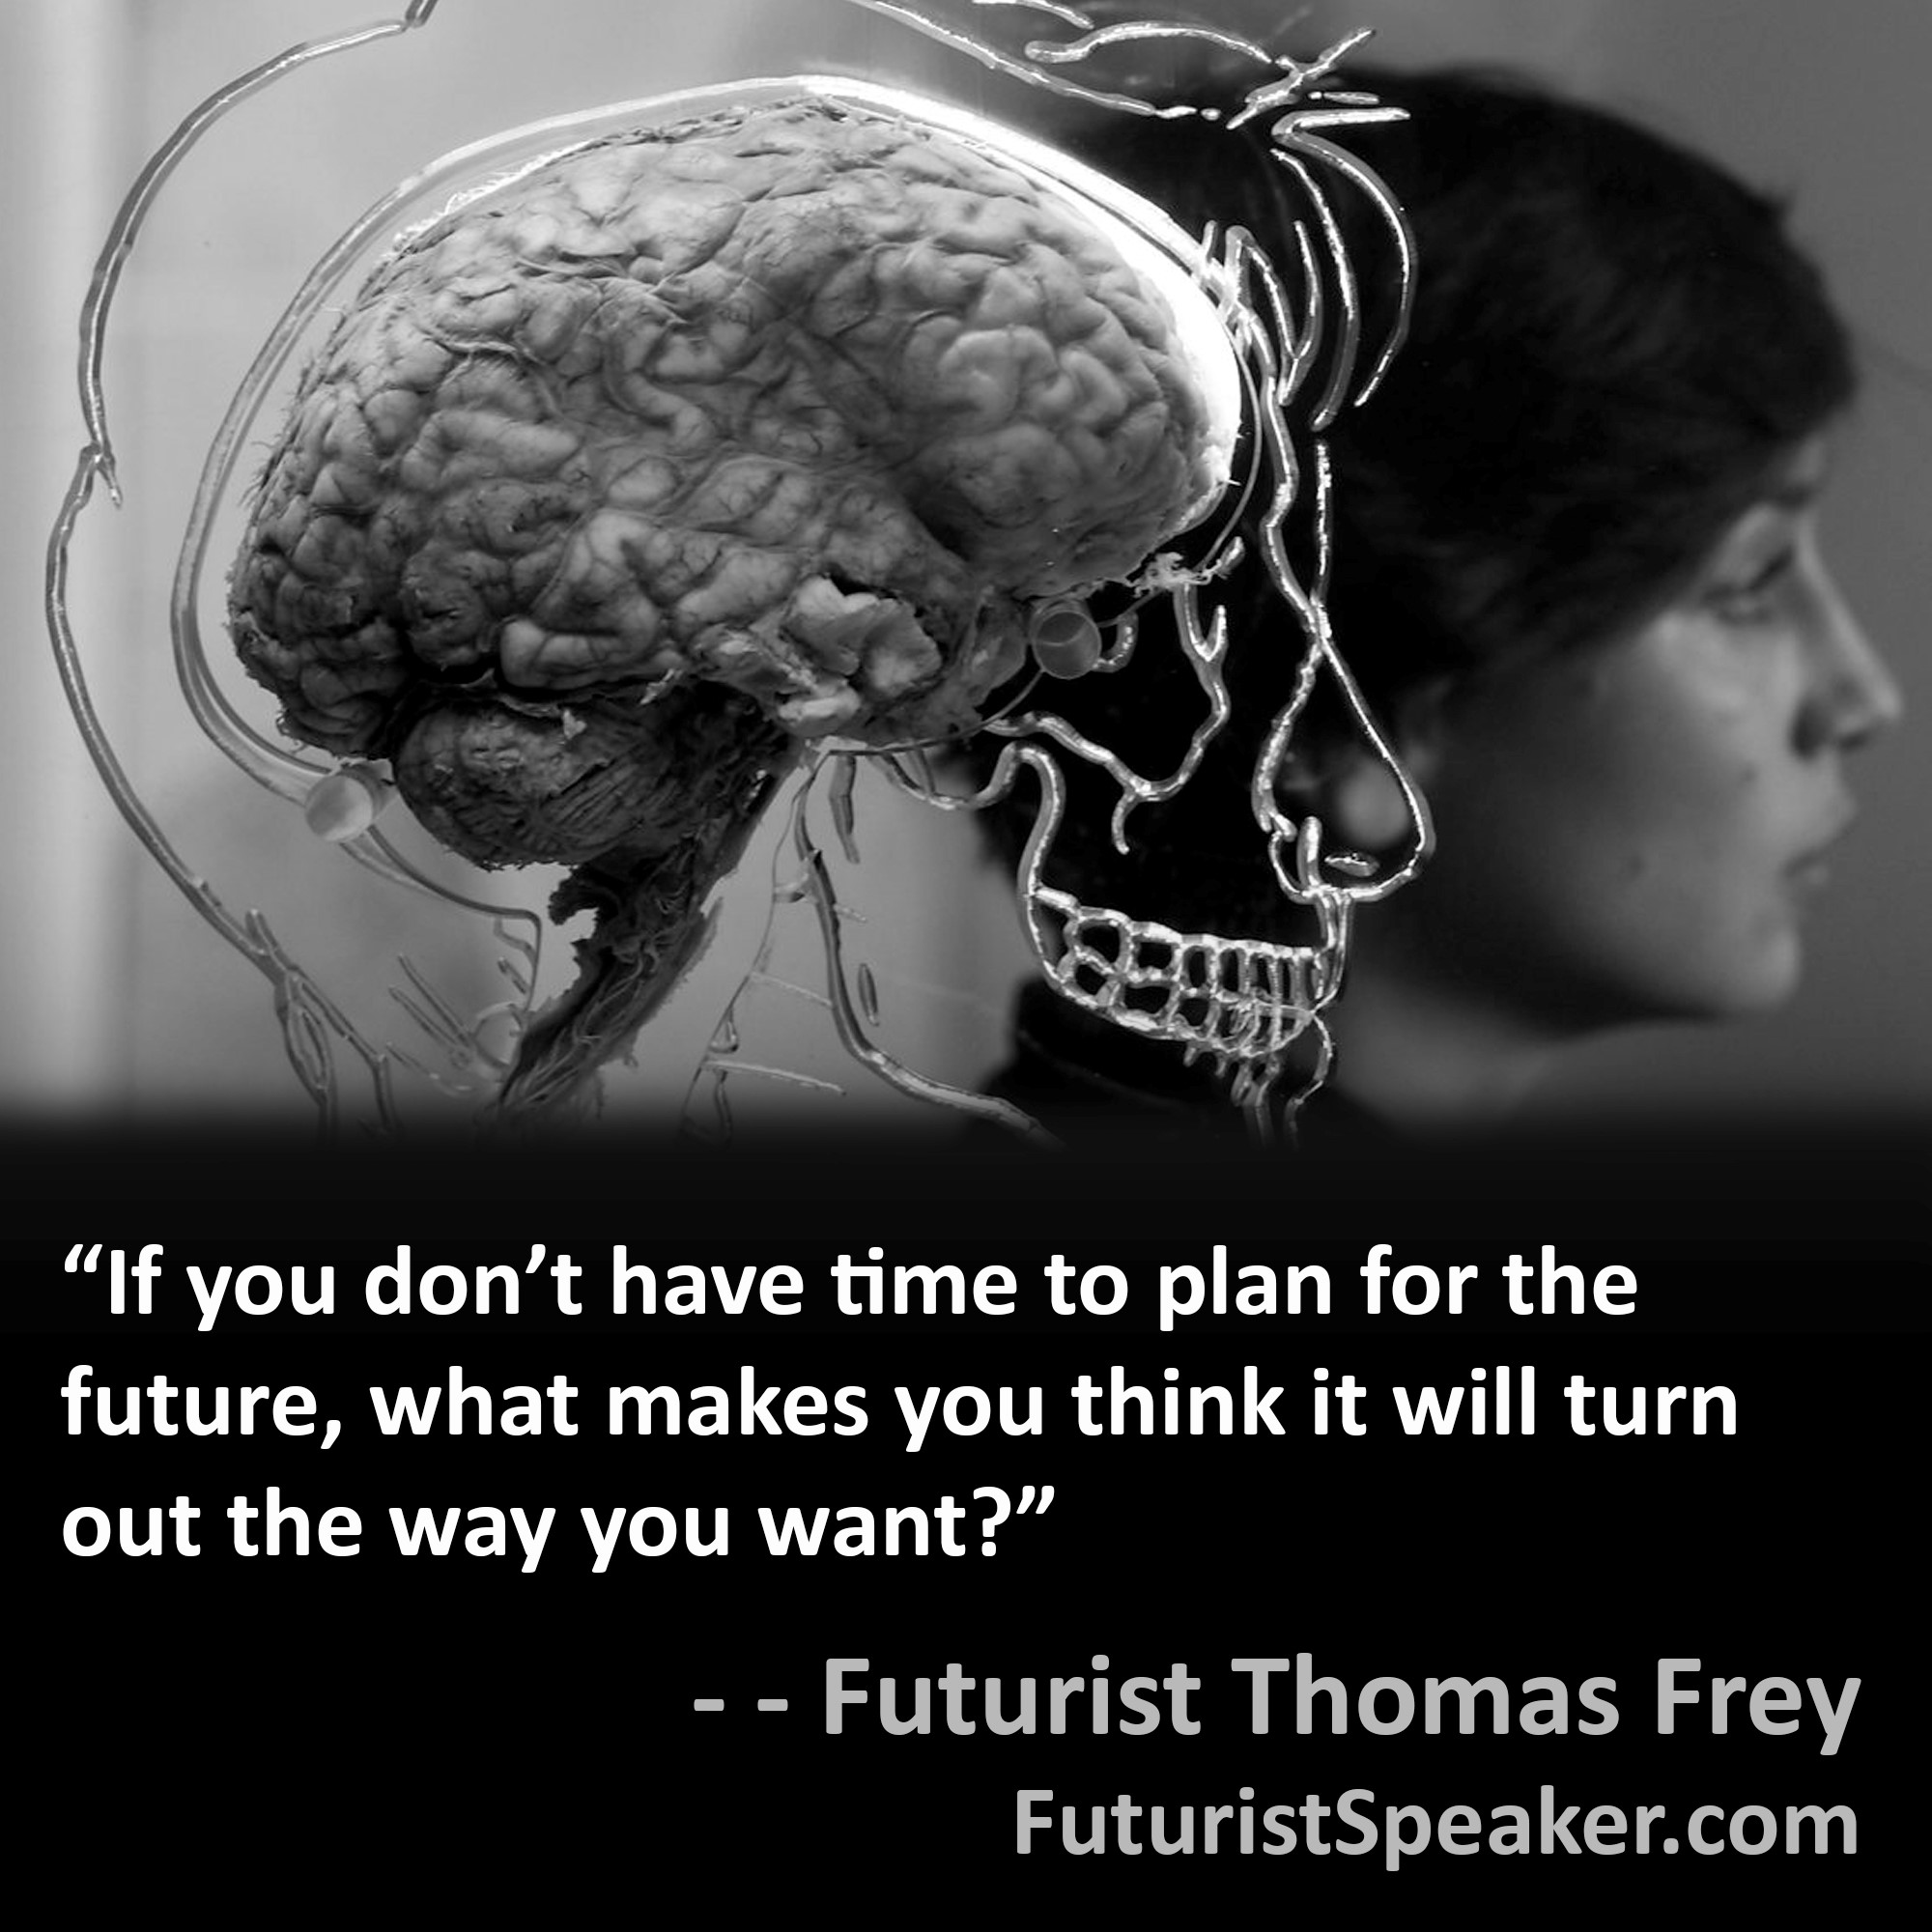 Thomas Frey Futurist Speaker Famous Quote: If you don't have time to plan for the future, what makes you think it will turn out the way you want.